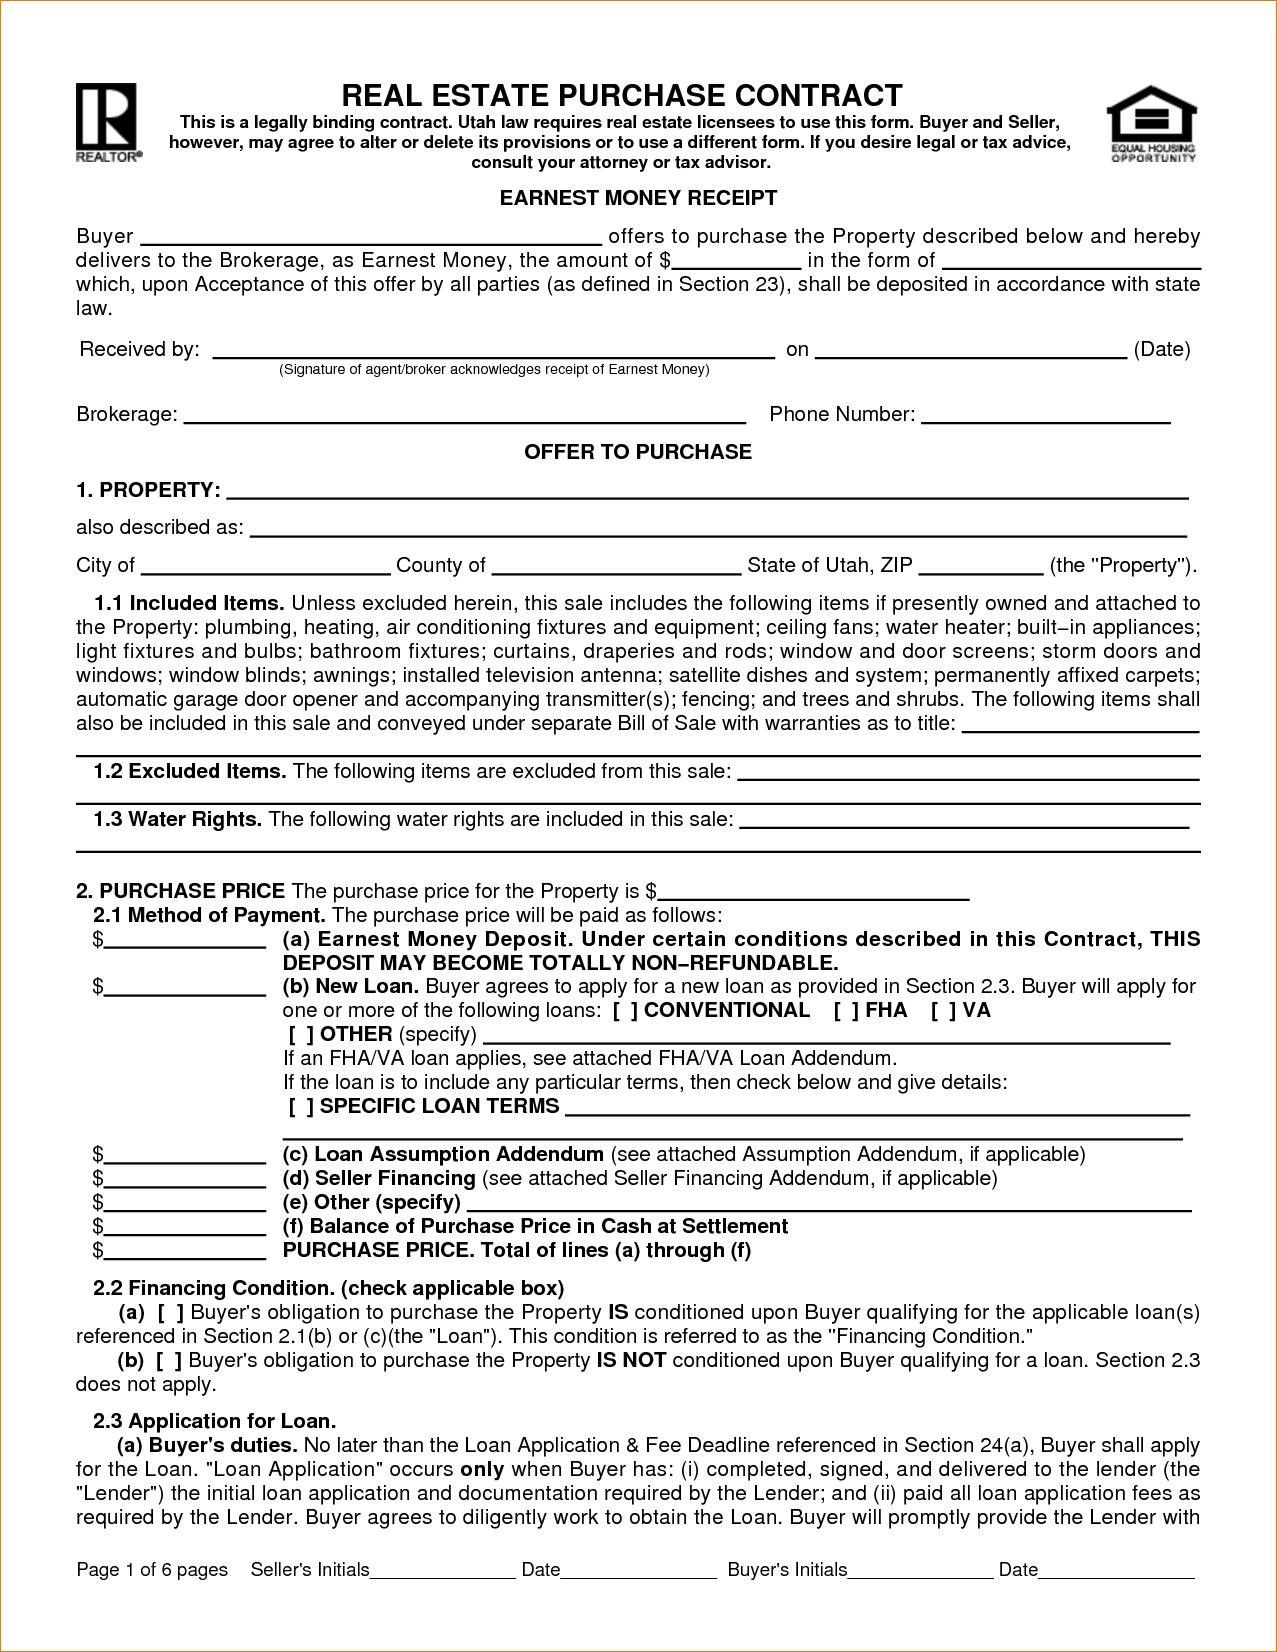 Real Estate Saleowner Colona Rsd7 Pertaining To For Sale By Owner Contract Template Best Professio Real Estate Contract Purchase Contract Contract Template